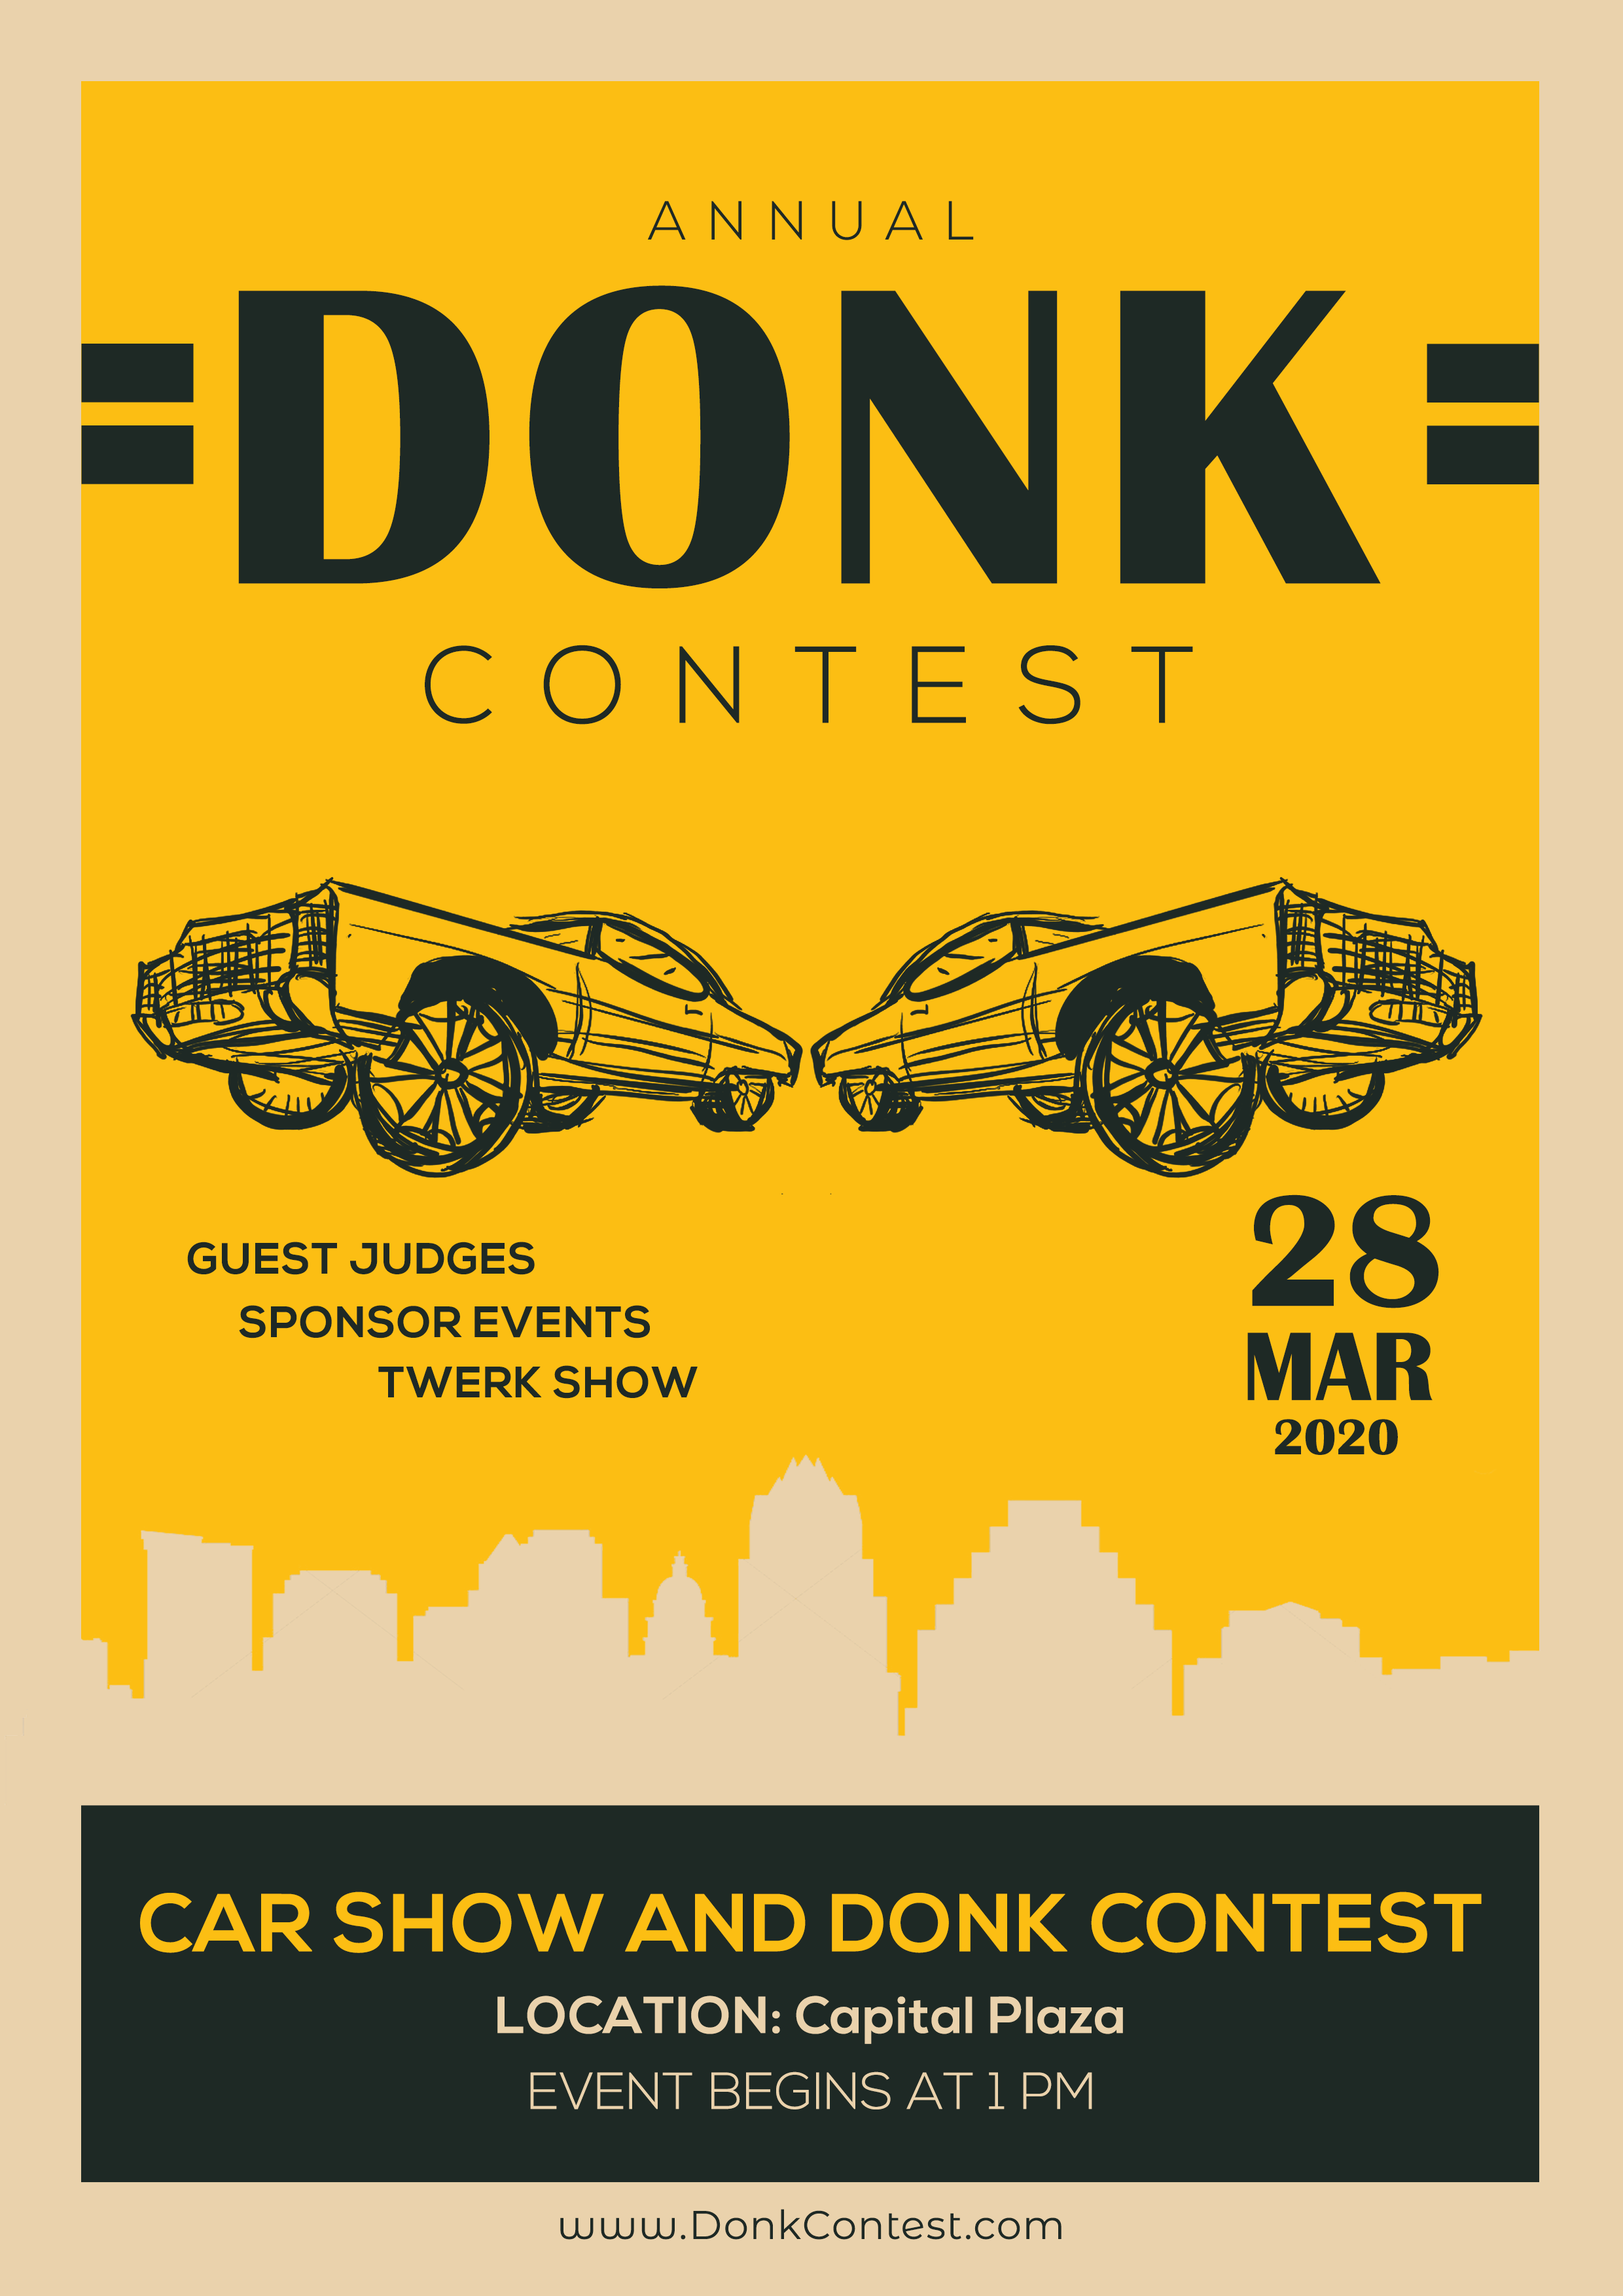 Texas Relays 2020 Schedule 2020 Donk Contest   Texas Relays Show Tickets, Sat, Mar 28, 2020